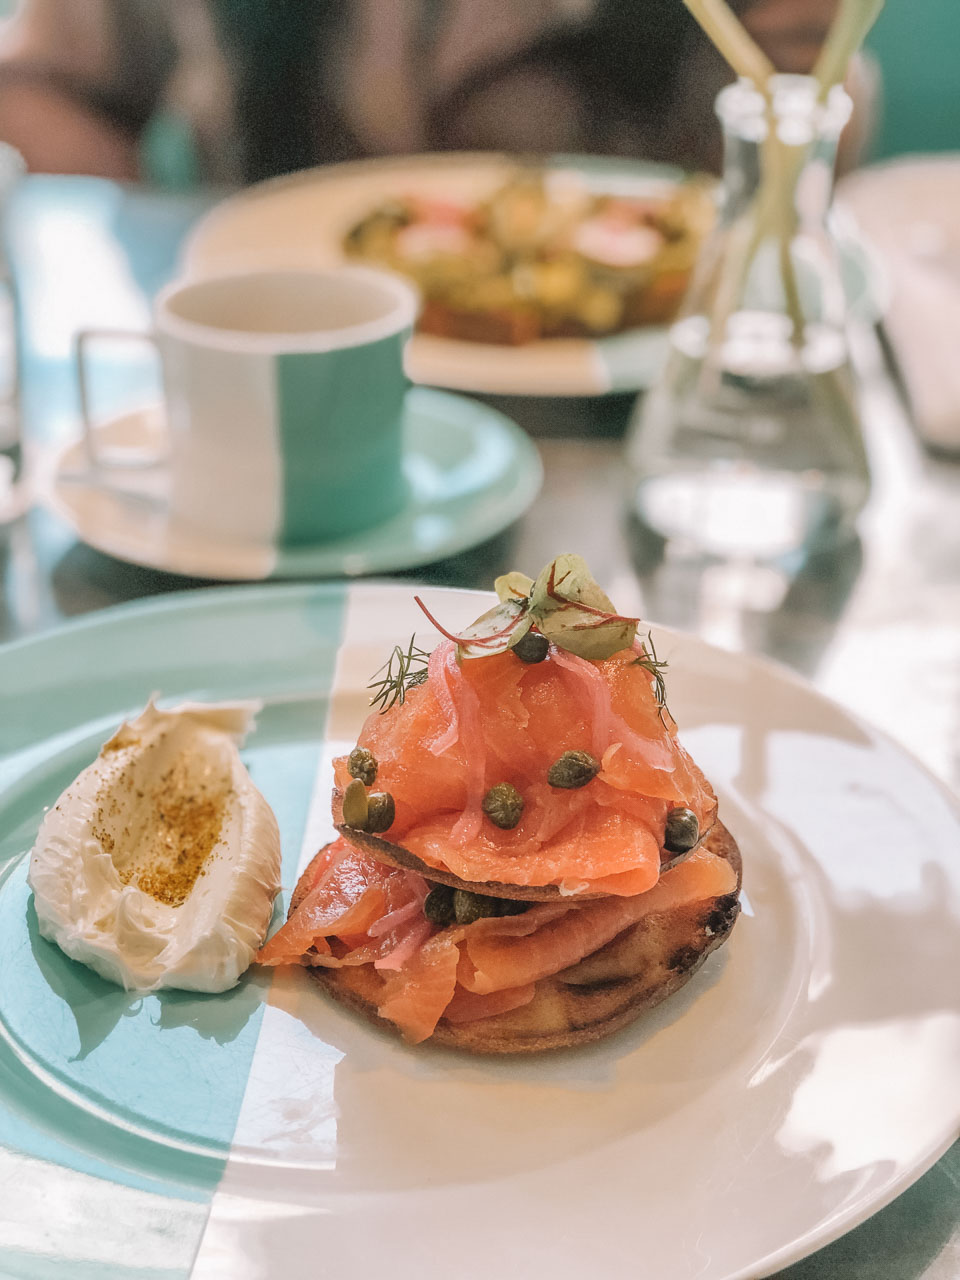 Smoked salmon and bagel stack at The Blue Box Cafe in New York City